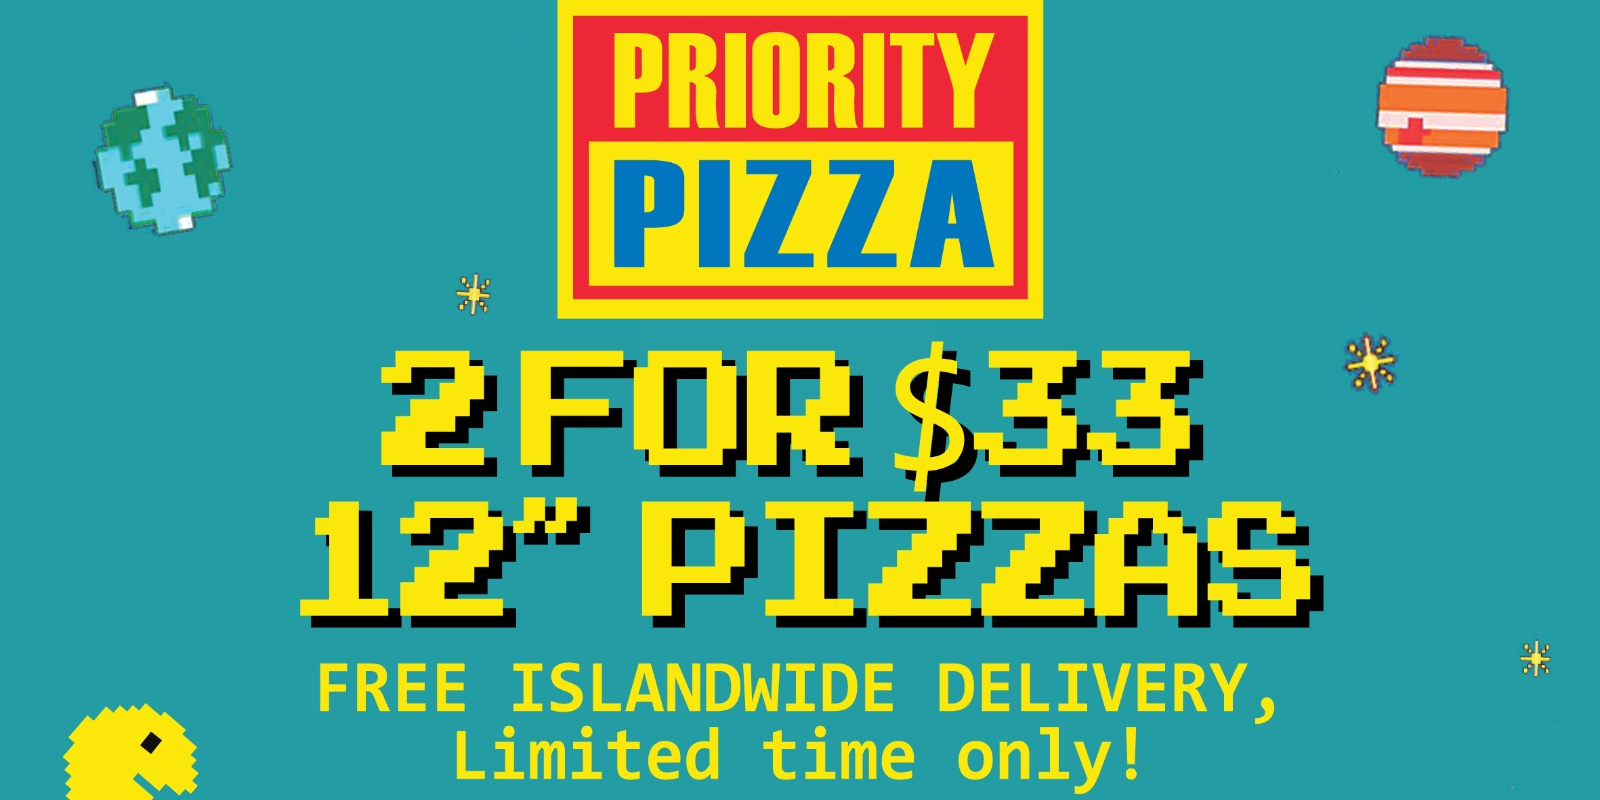 "Two 12"" Pizzas for only $33 at The Priority Club!"